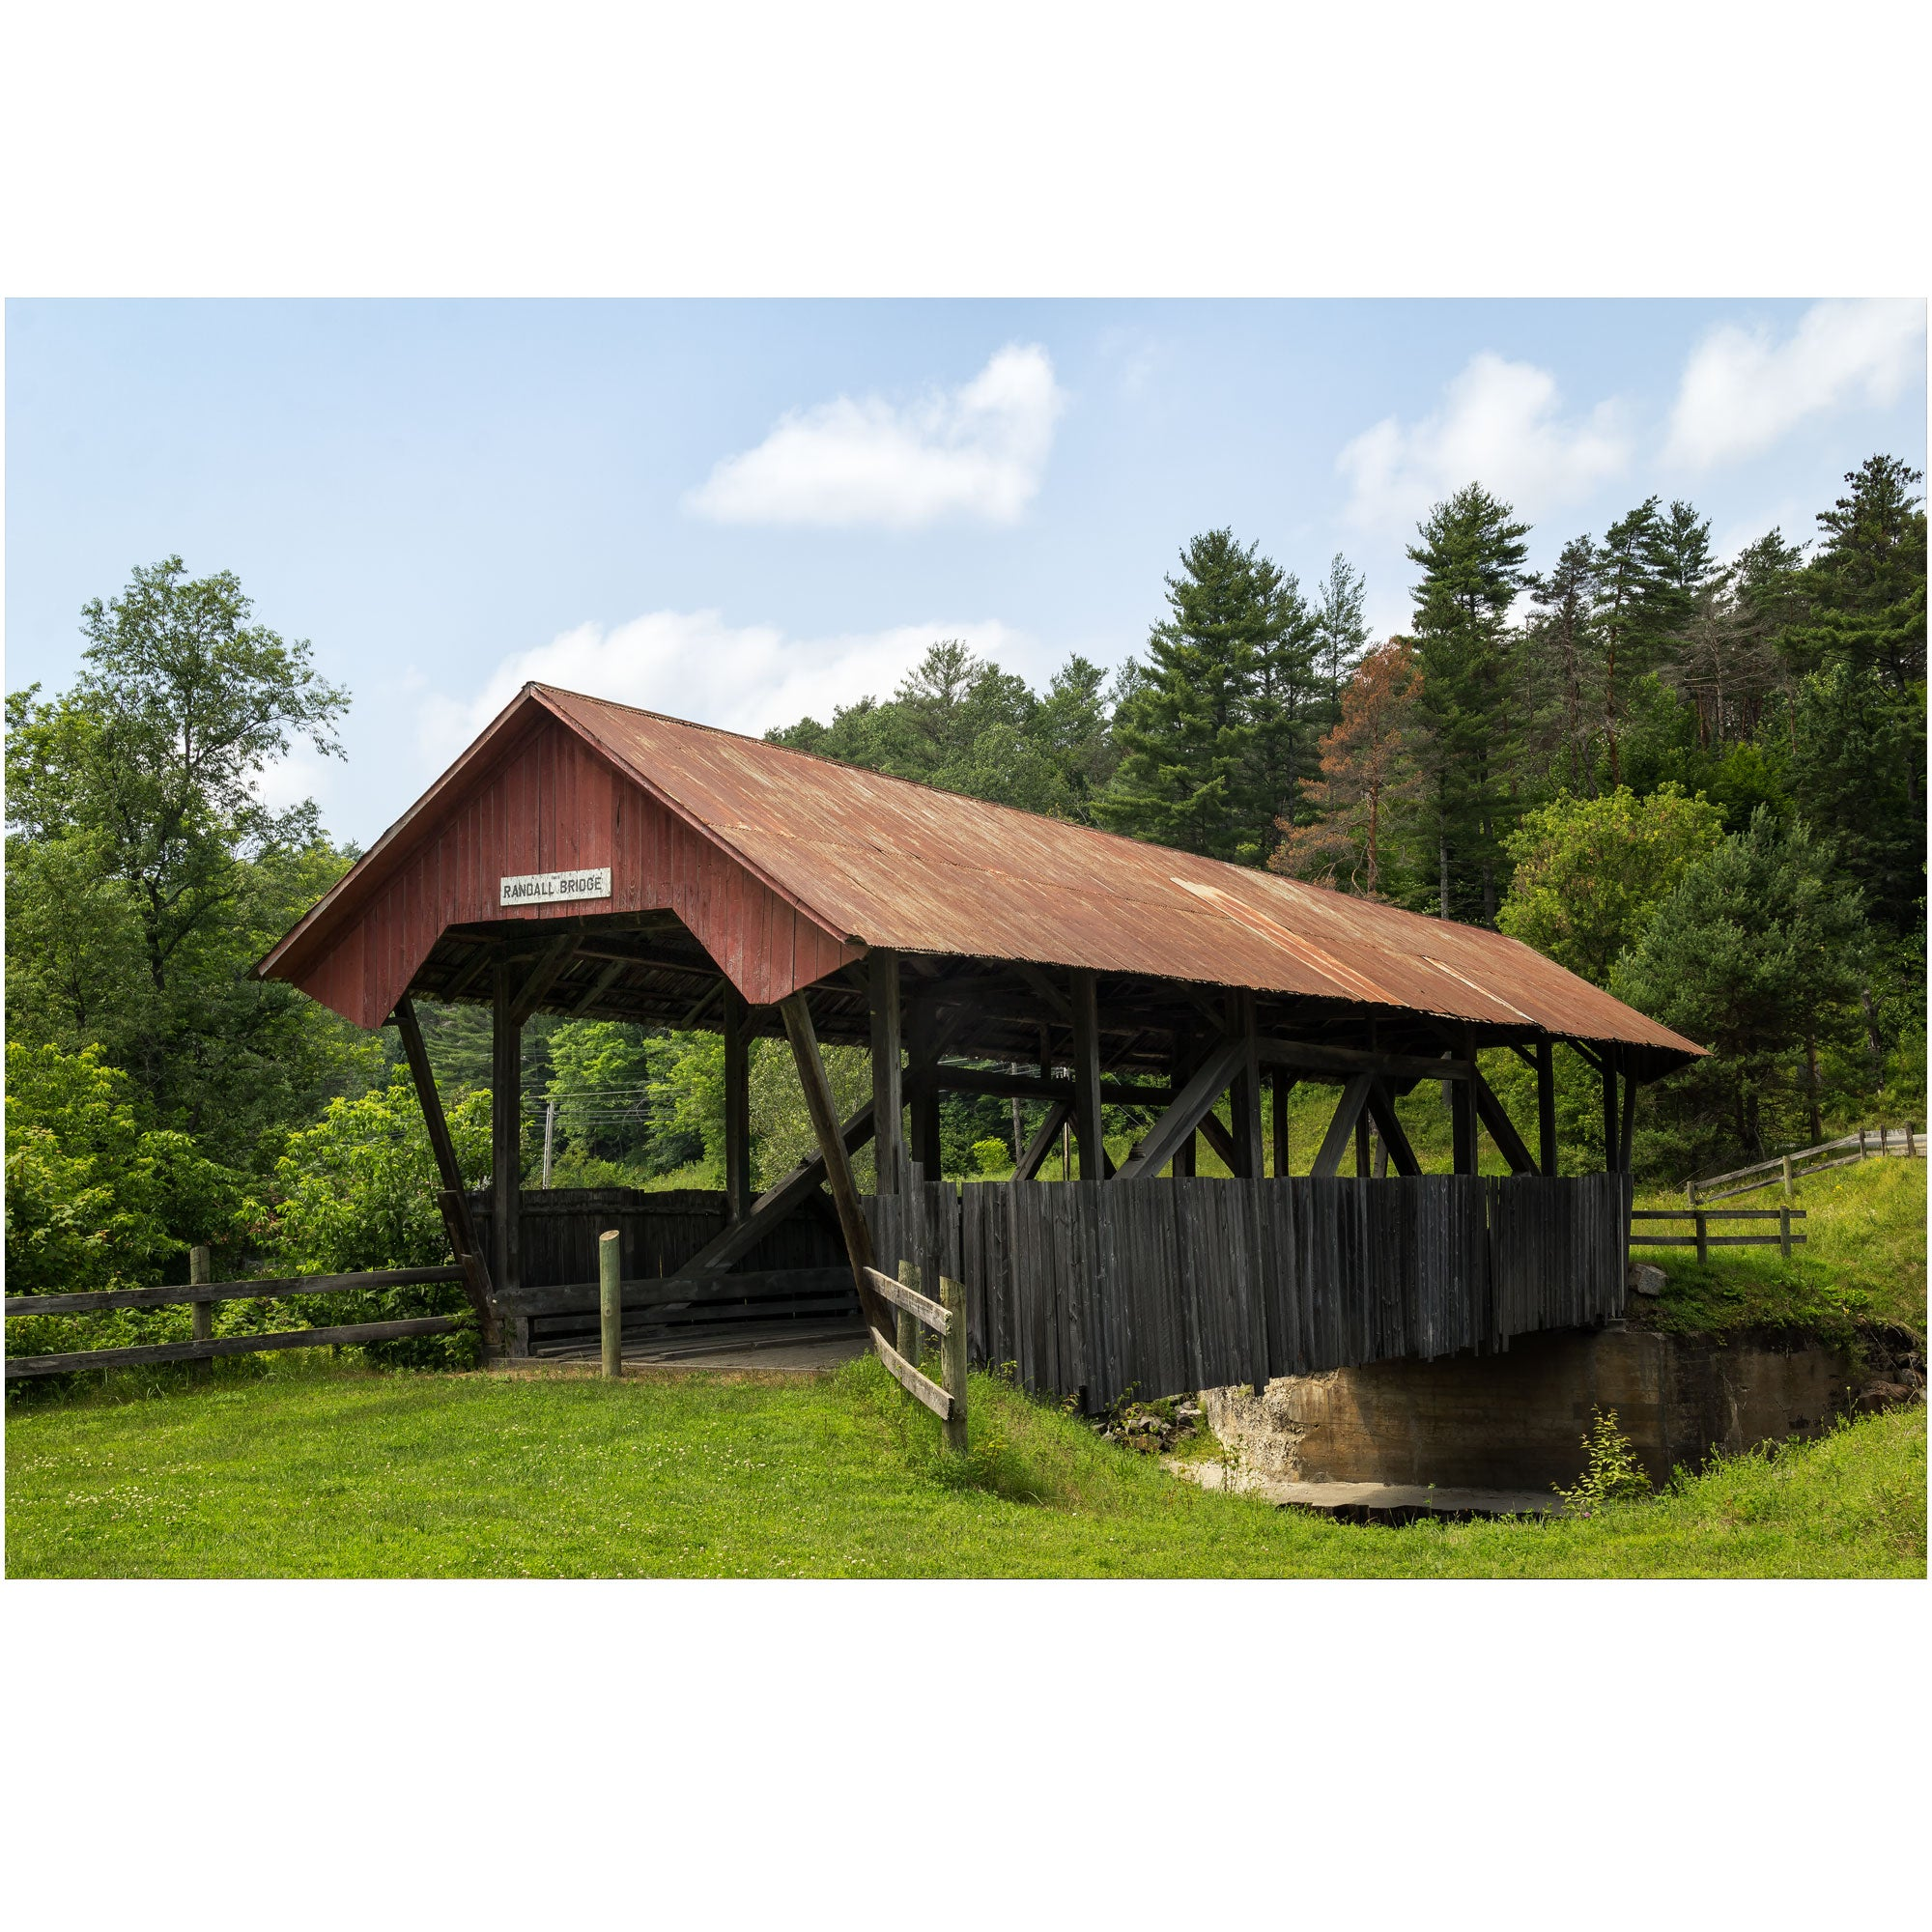 randall covered bridge in vermont